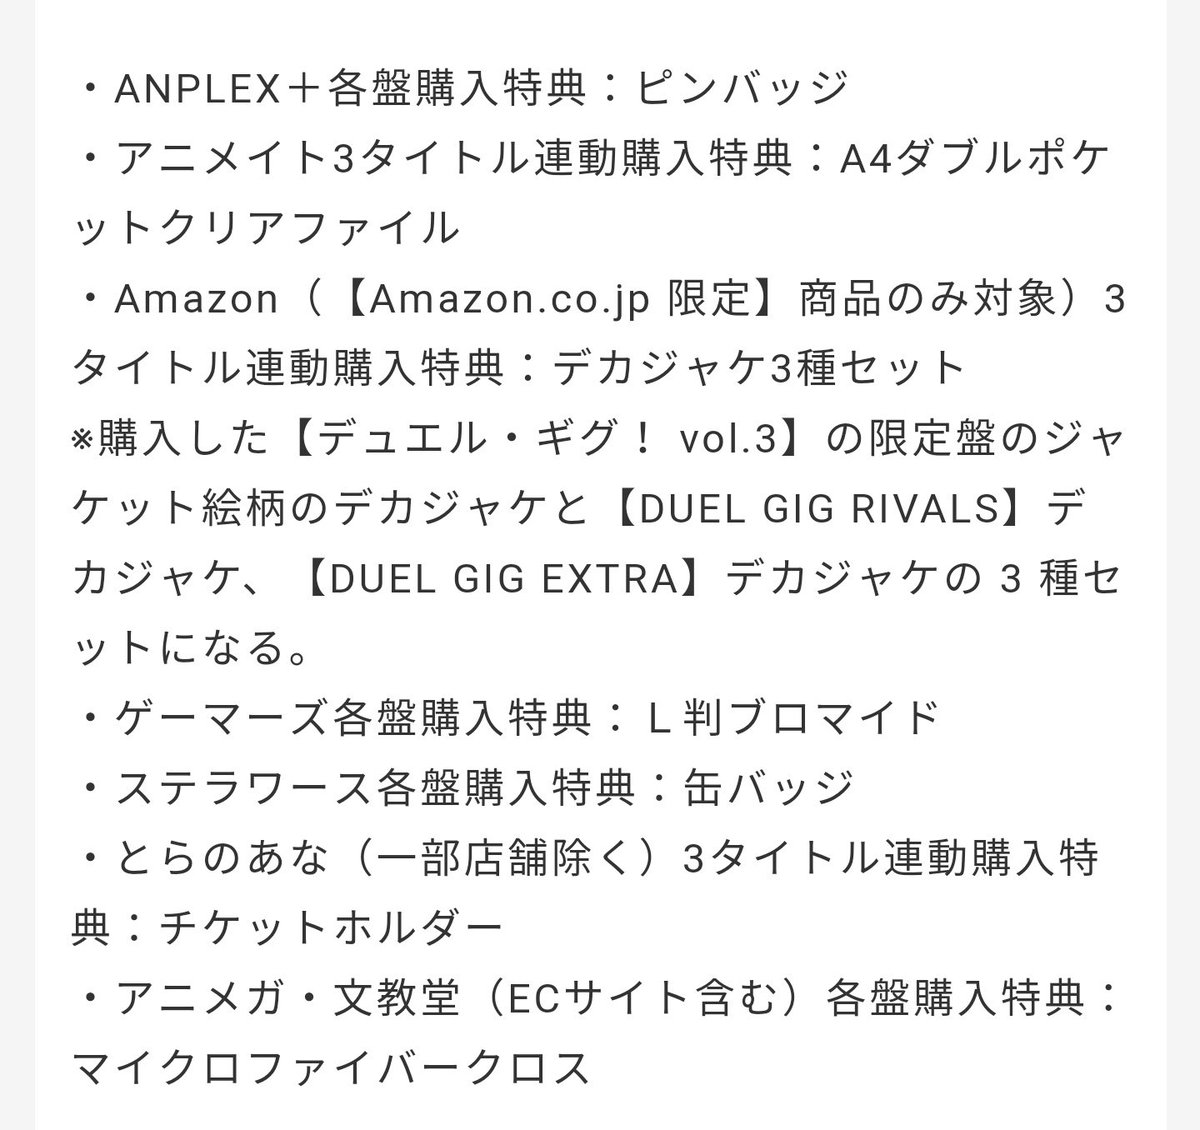 Purchase Benefits: ・Aniplex+: pin badge ・Animate: A4 Double pocket clearfile ・Amazon: Big jacket (3-set)* ・Gamers: Large Bromide ・Stellaworth: can badge ・Toranoana: ticket holder ・Animega/bunkyodo: microfiber cloth  ※ Refer to previous RTs on availing the bonuses <br>http://pic.twitter.com/C5mKQIYwID